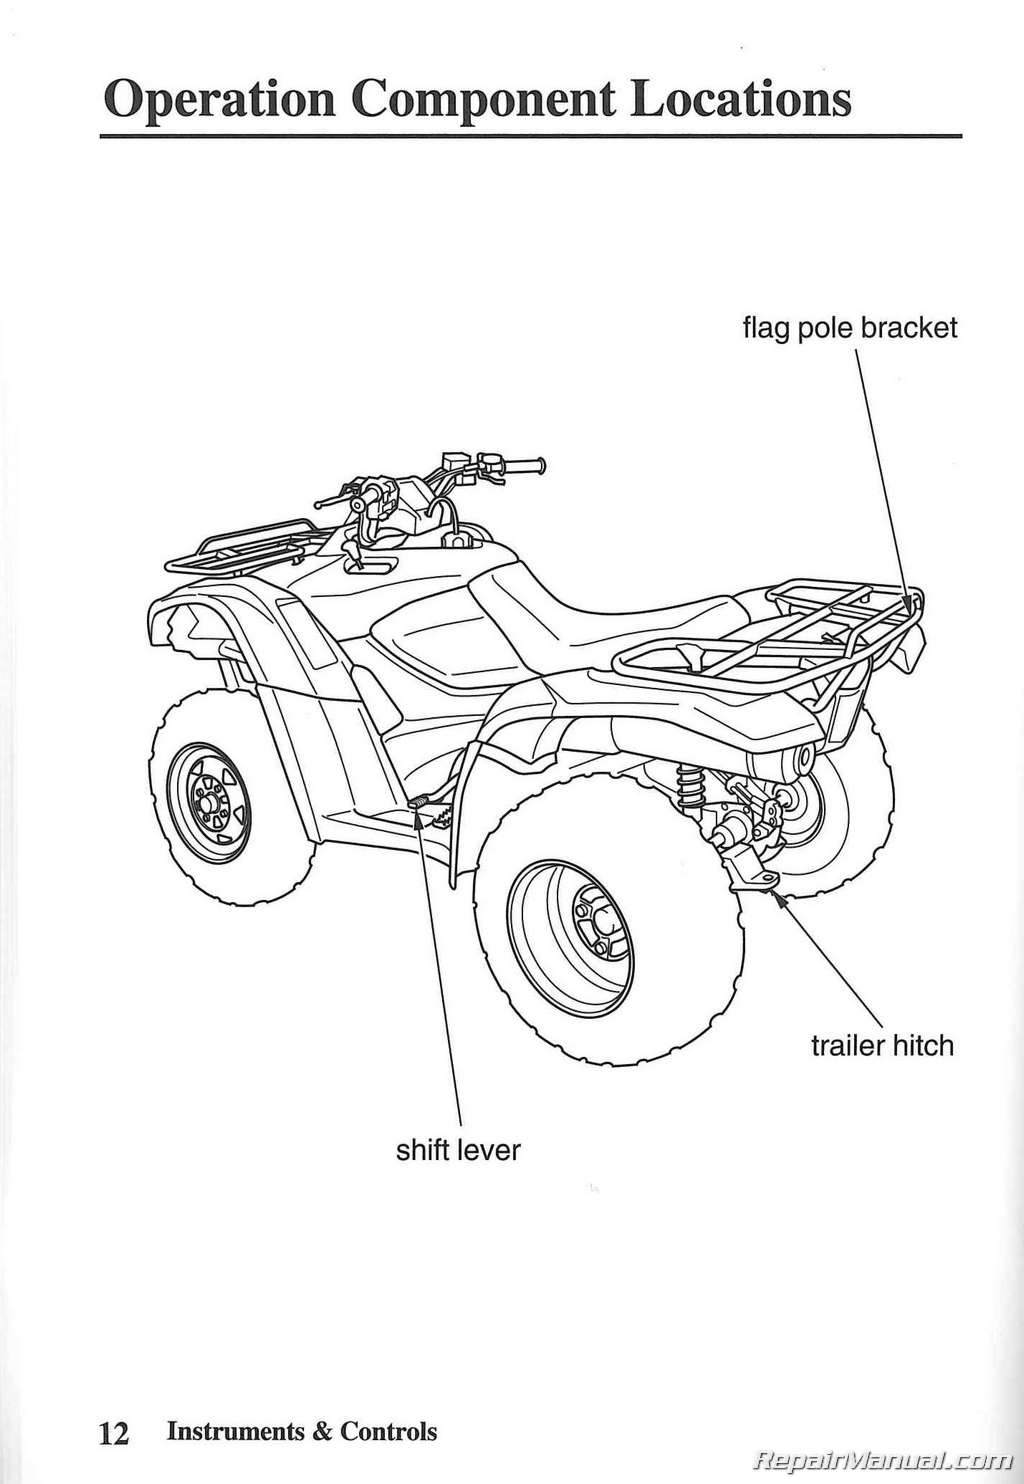 2010 Honda Rancher Diagram Simple Guide About Wiring 2009 420 Trx Owner S Manual Trx420fm Fpm Fourtrax Rh Repairmanual Com